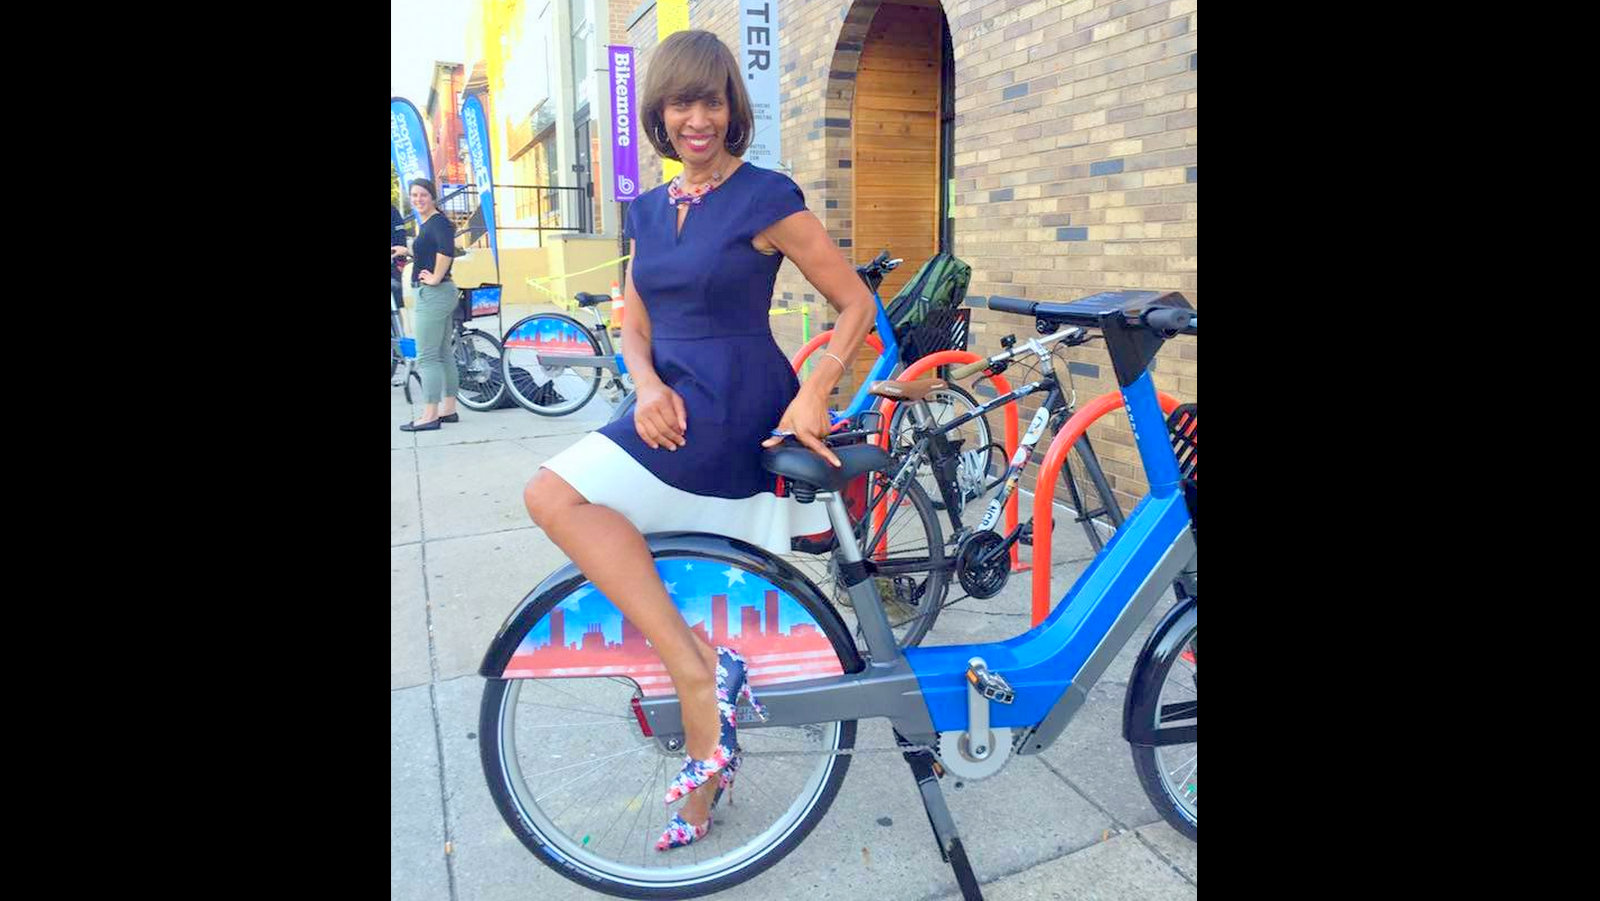 Happier times. Then mayoral candidate Catherine Pugh posing with a Baltimore Bikeshare bike in 2016.